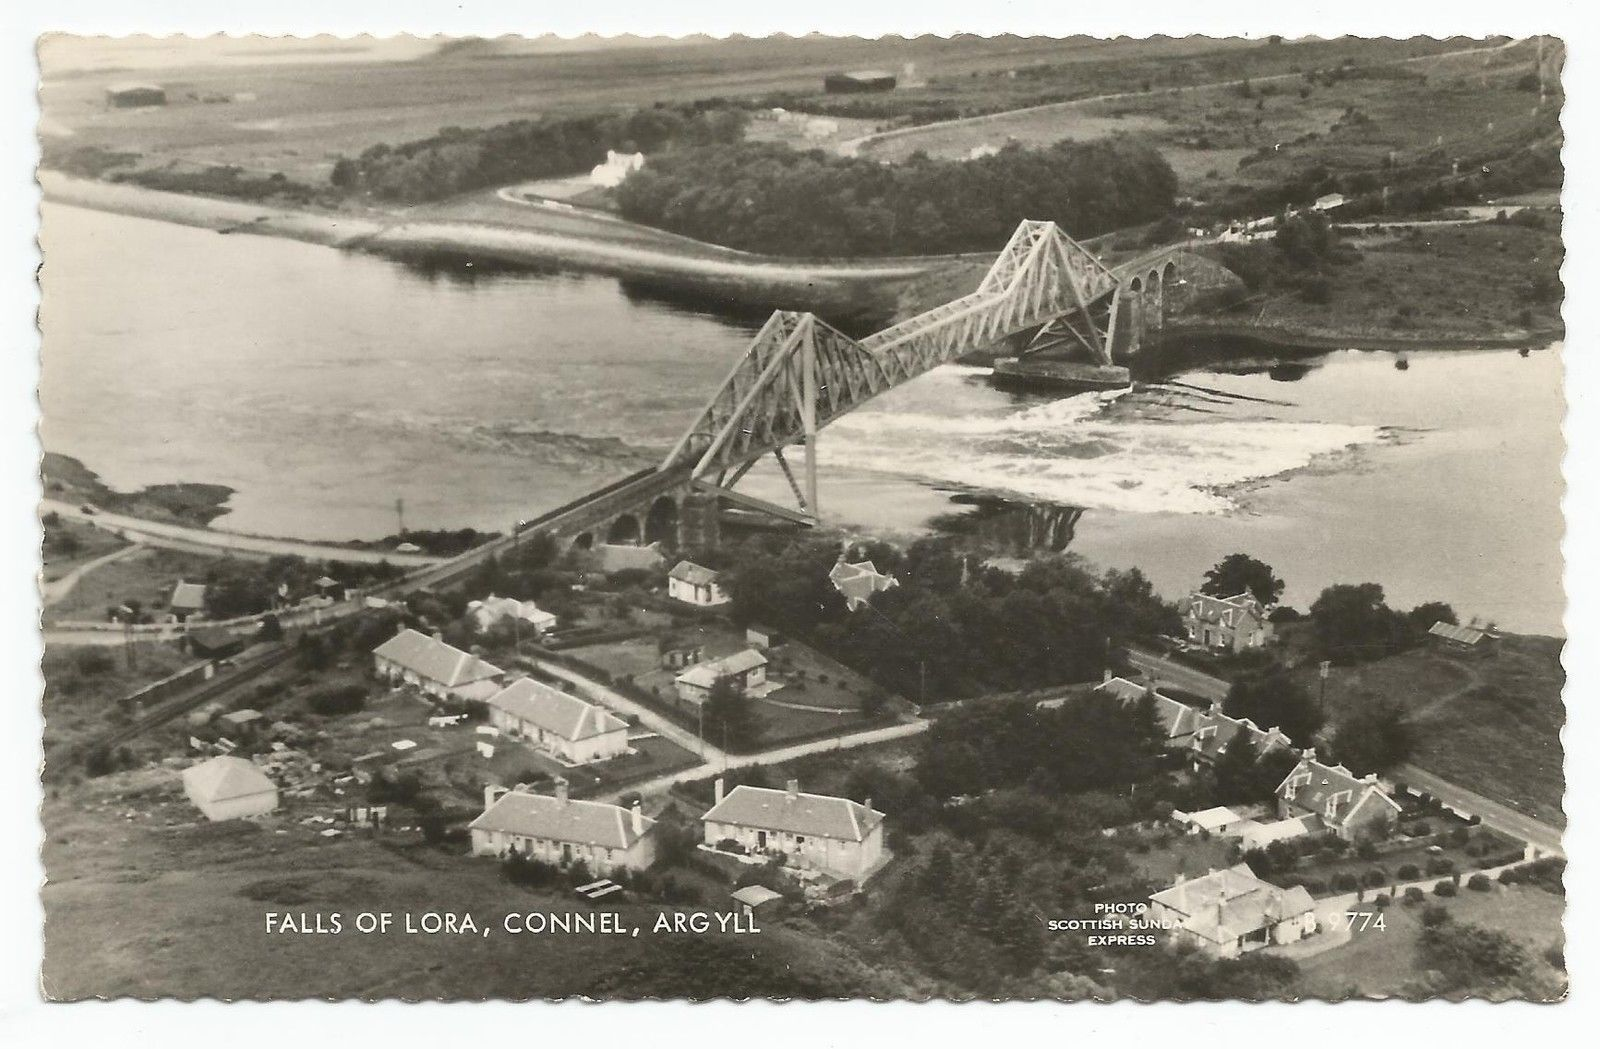 http://www.ebay.co.uk/itm/POSTCARD-SCOTLAND-CONNEL-FERRY-RP-An-Aerial-View-of-The-Bridge-amp-Falls-of-Lora-/381248516893?